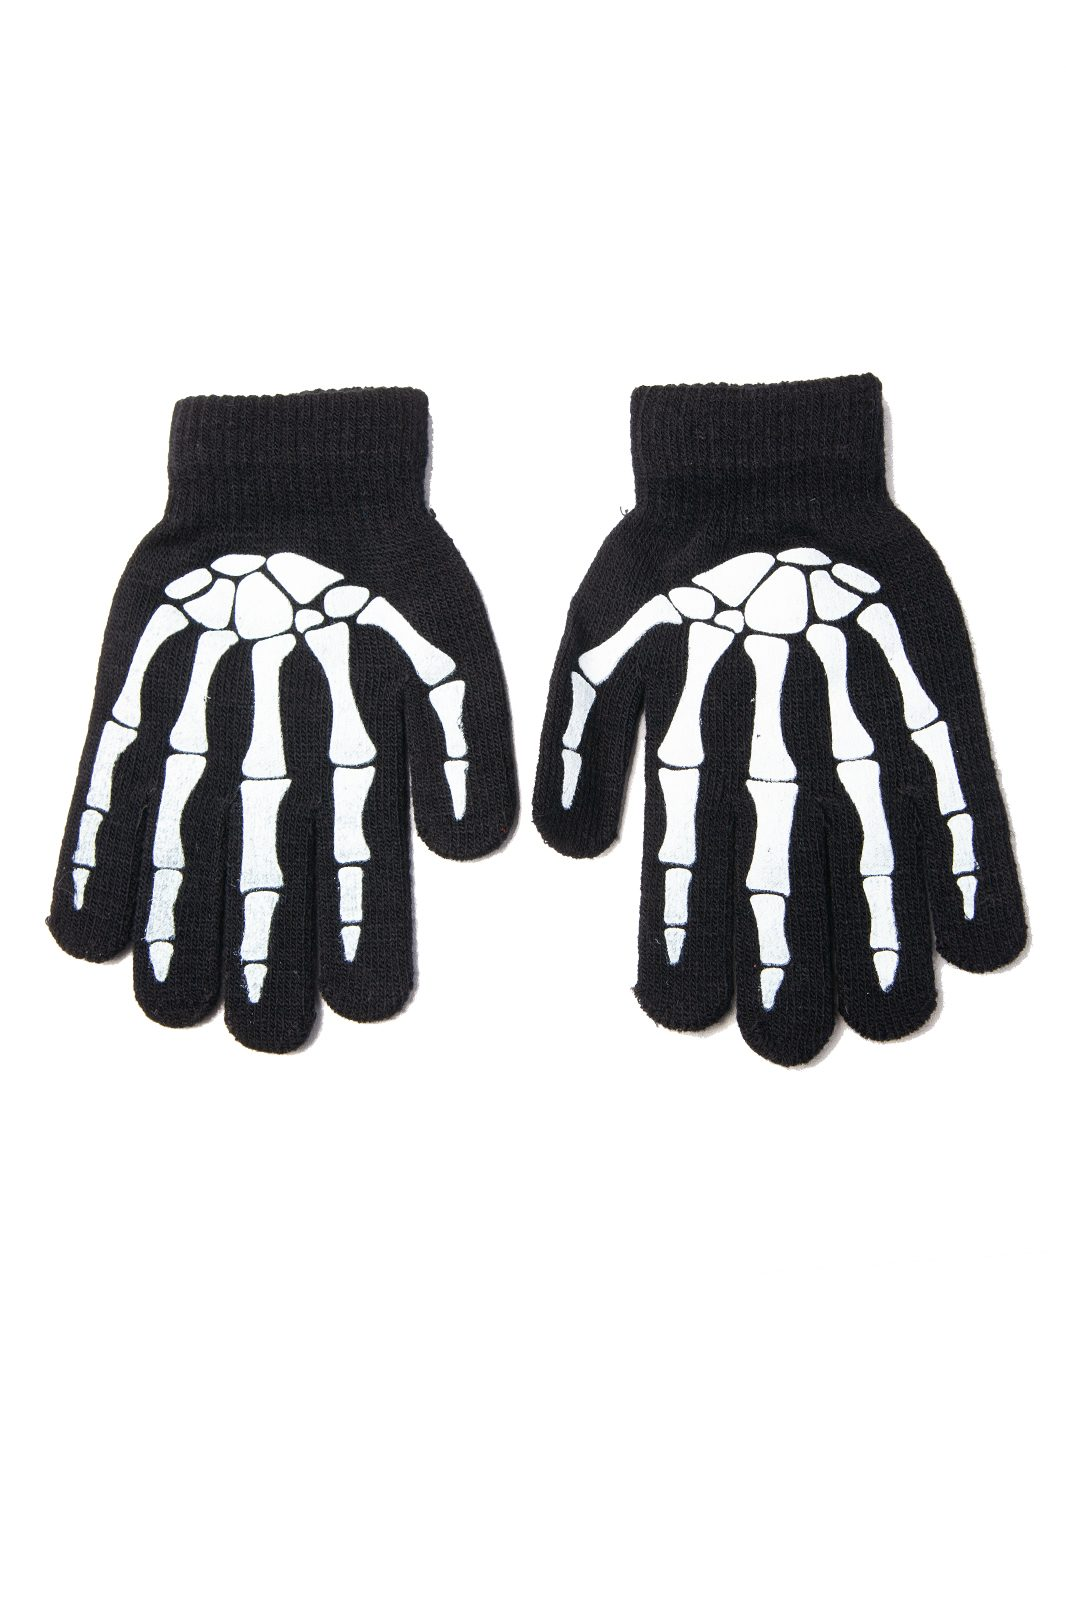 BGG Gloves Skeleton